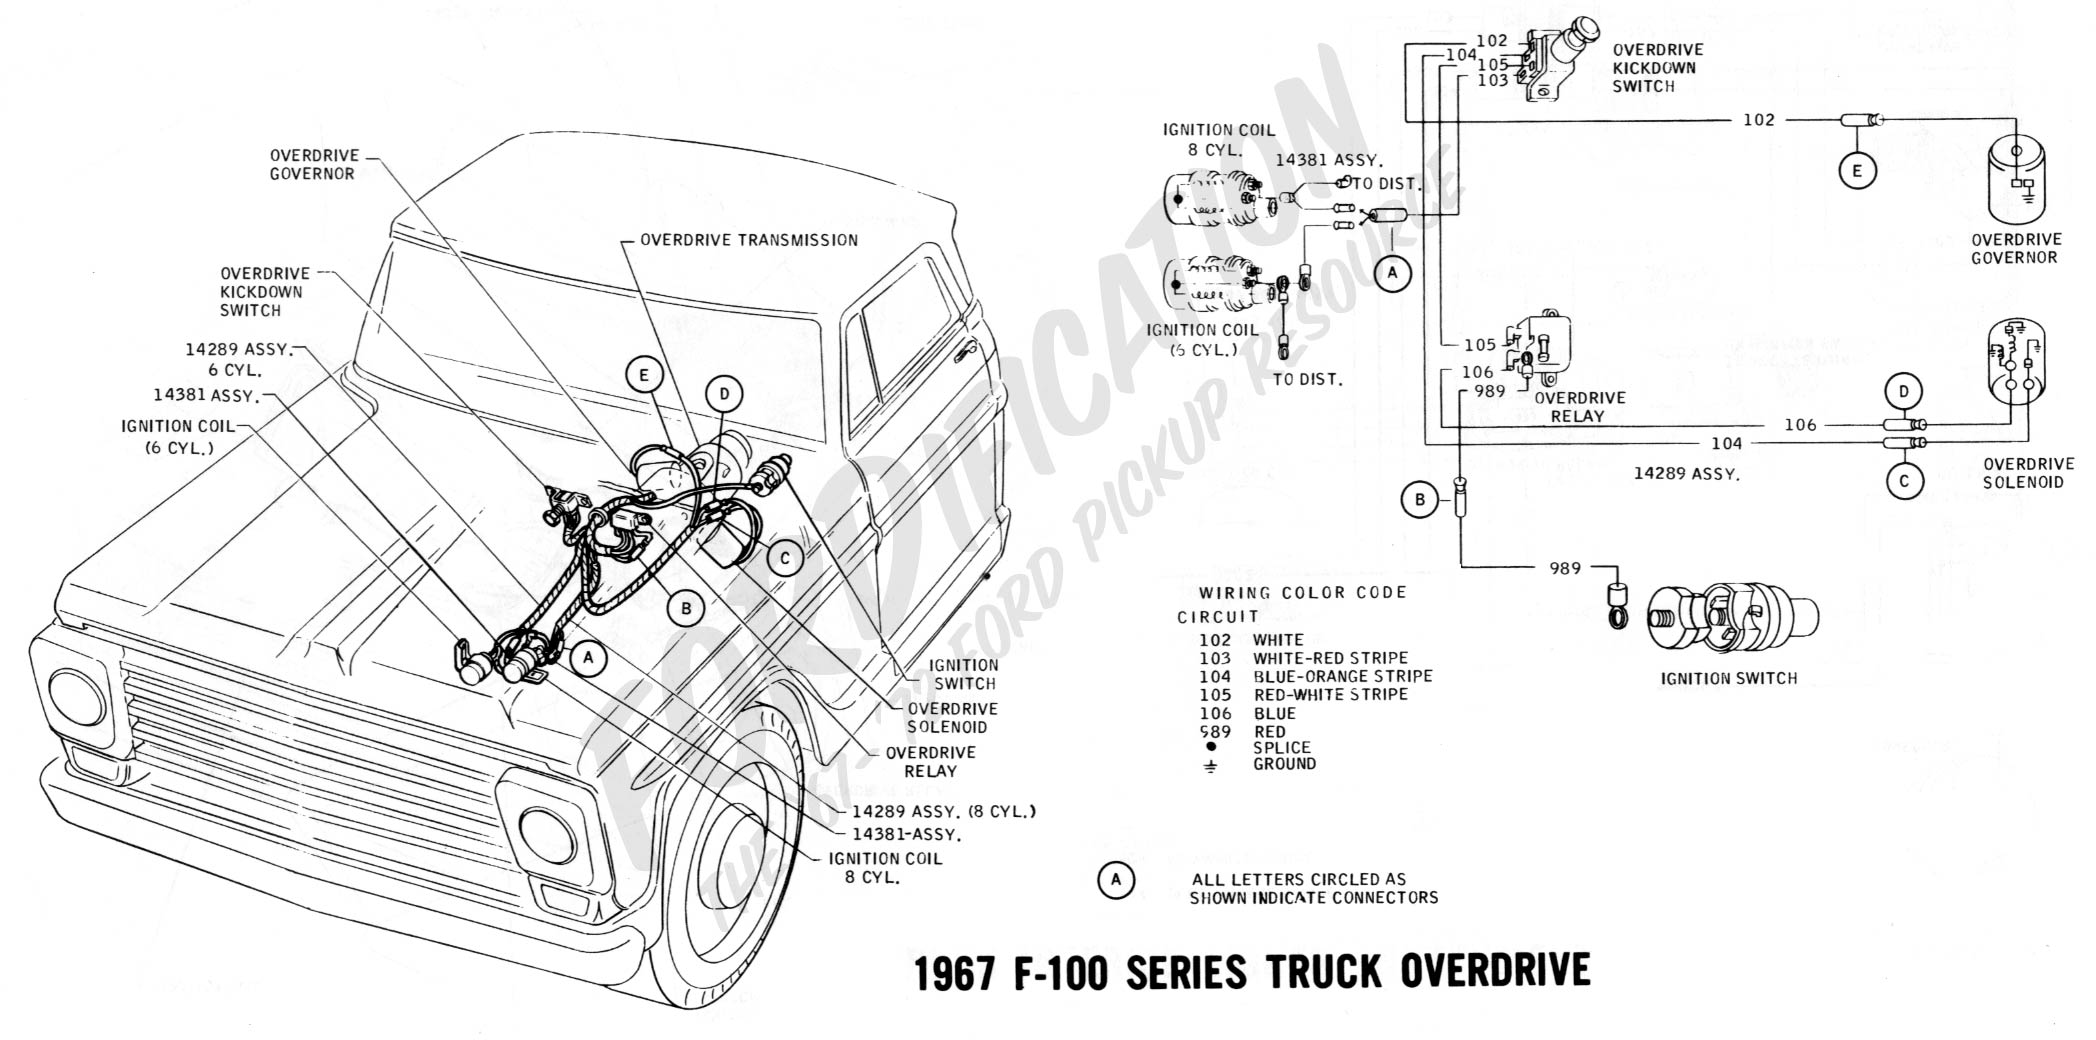 1967 Ford F 250 Wiring Diagram Manual E Books 1960 Thunderbird 78 F250 Library1967 100 Series Overdrive 1968 Schematics